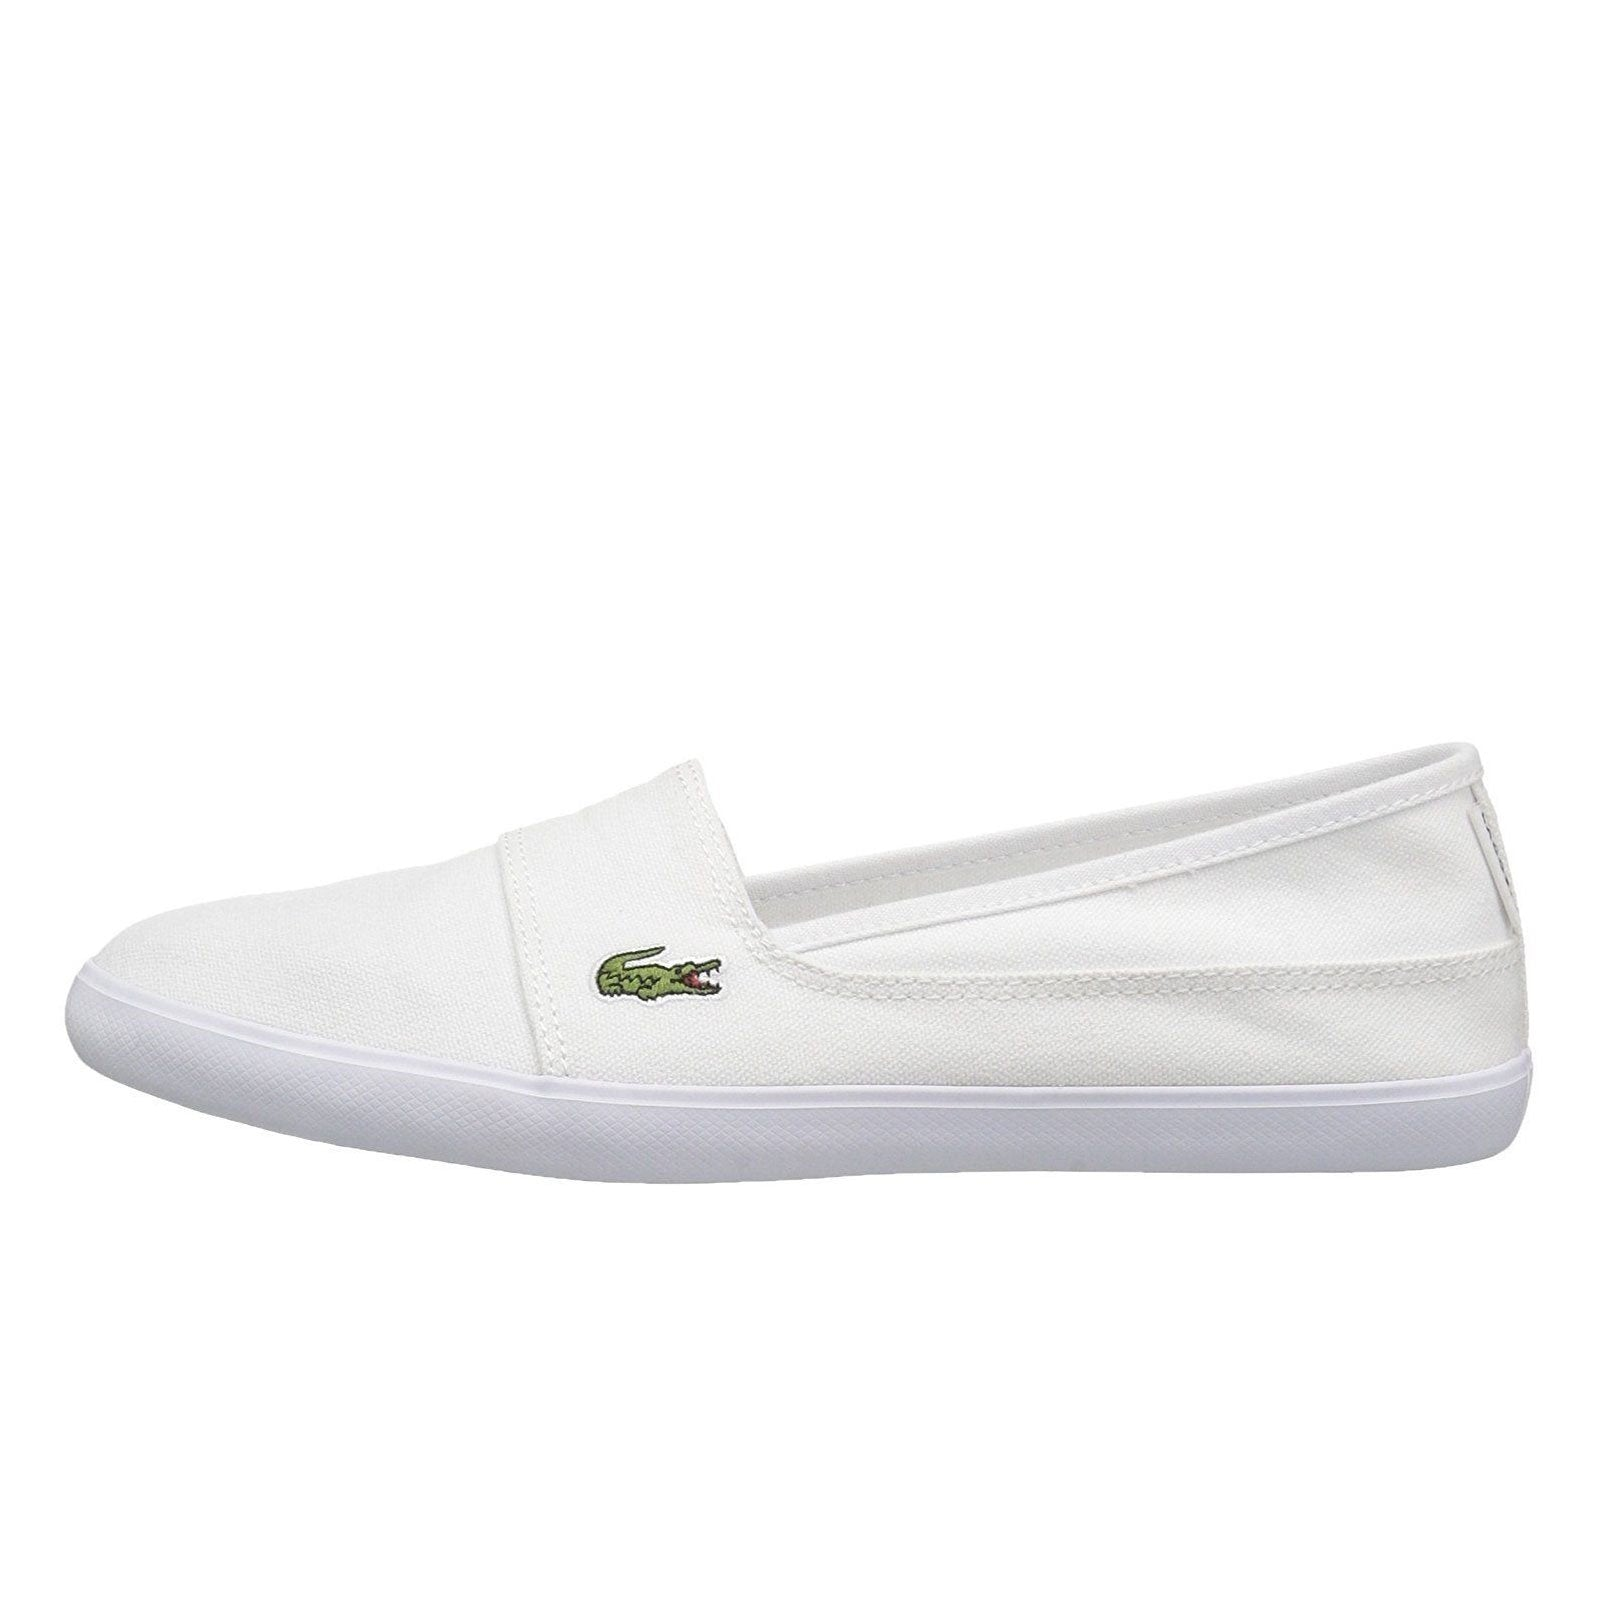 788a5a68c14a Lacoste Marice Bl 2 Womens Slip On in White Casual Sneakers - Top ...